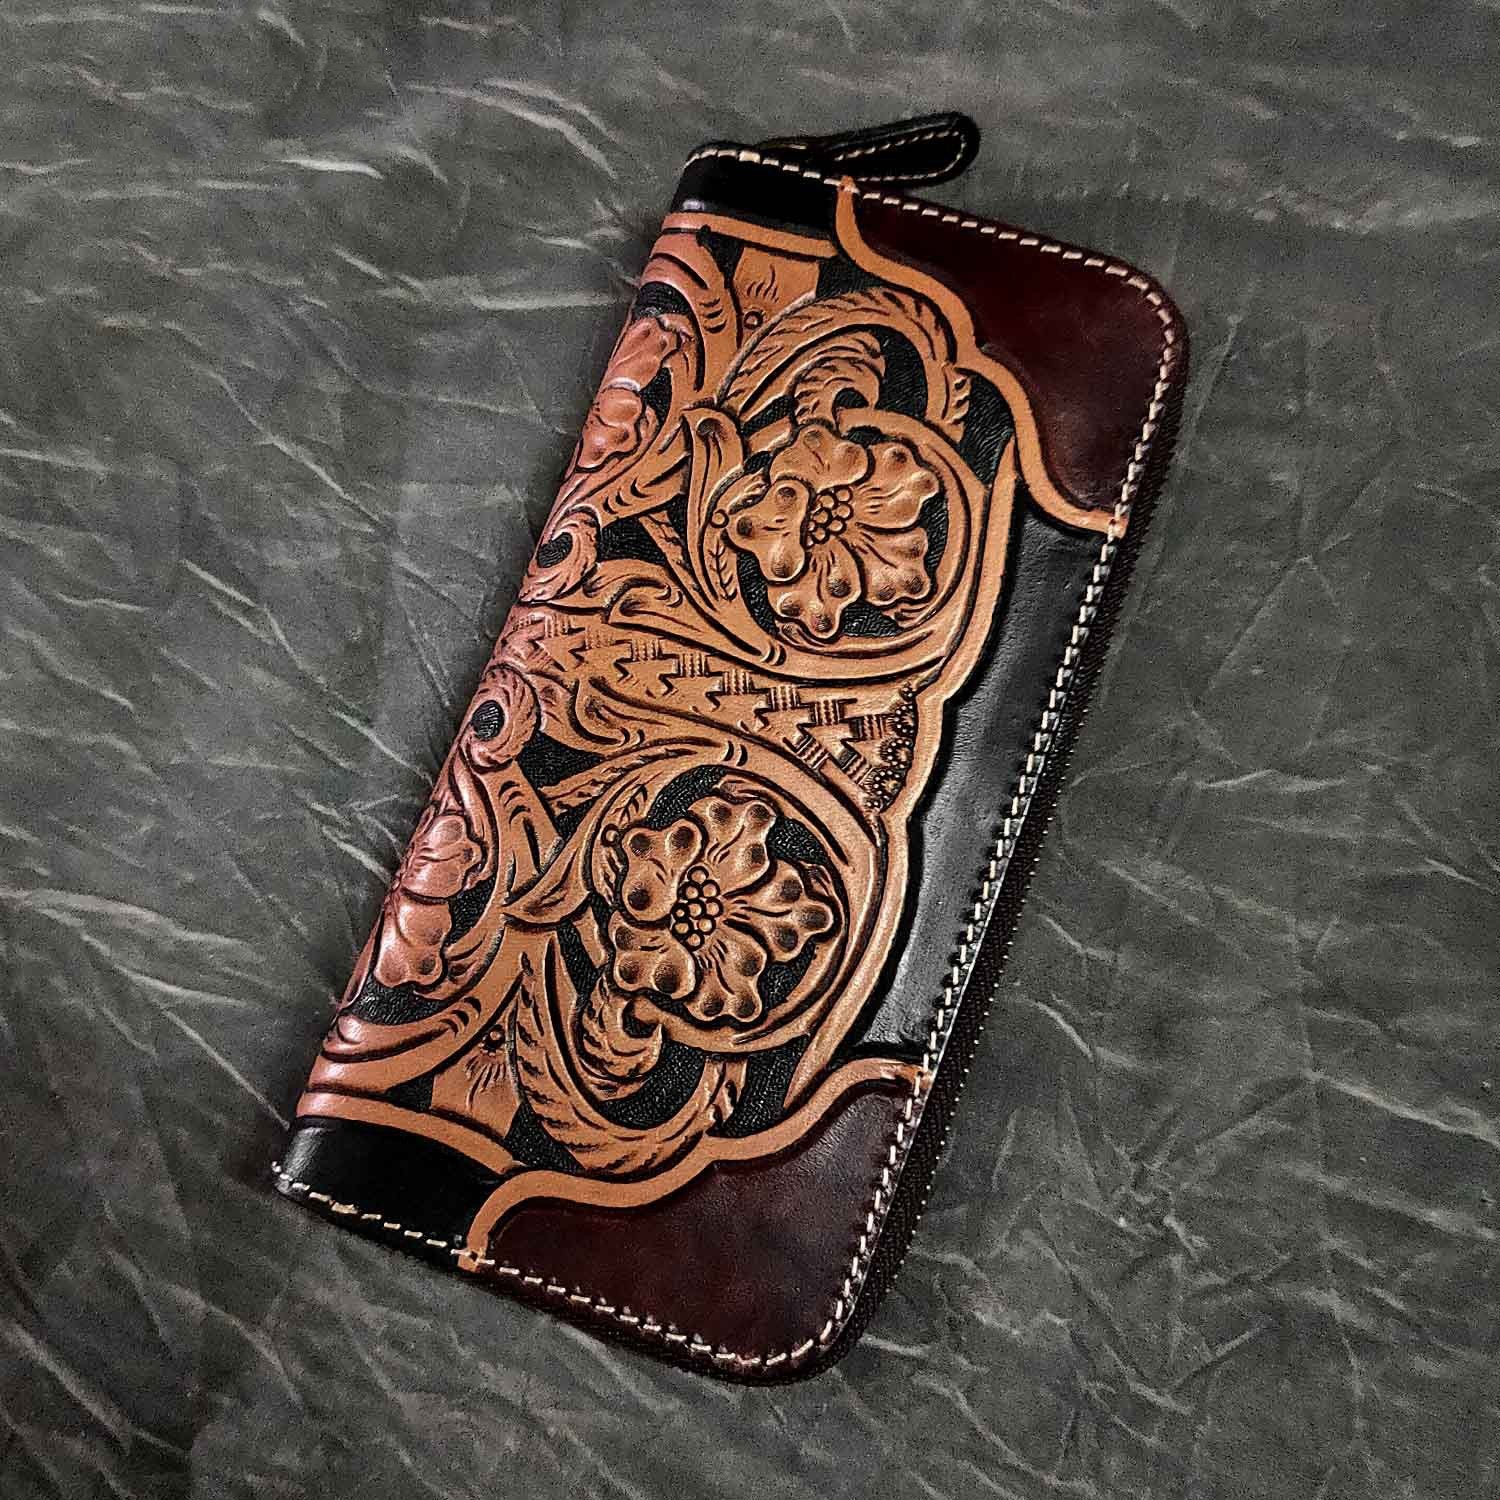 Badass Maroon Leather Men's Long Biker Tooled Wallet Floral Tooled Zipper Long Wallets For Men